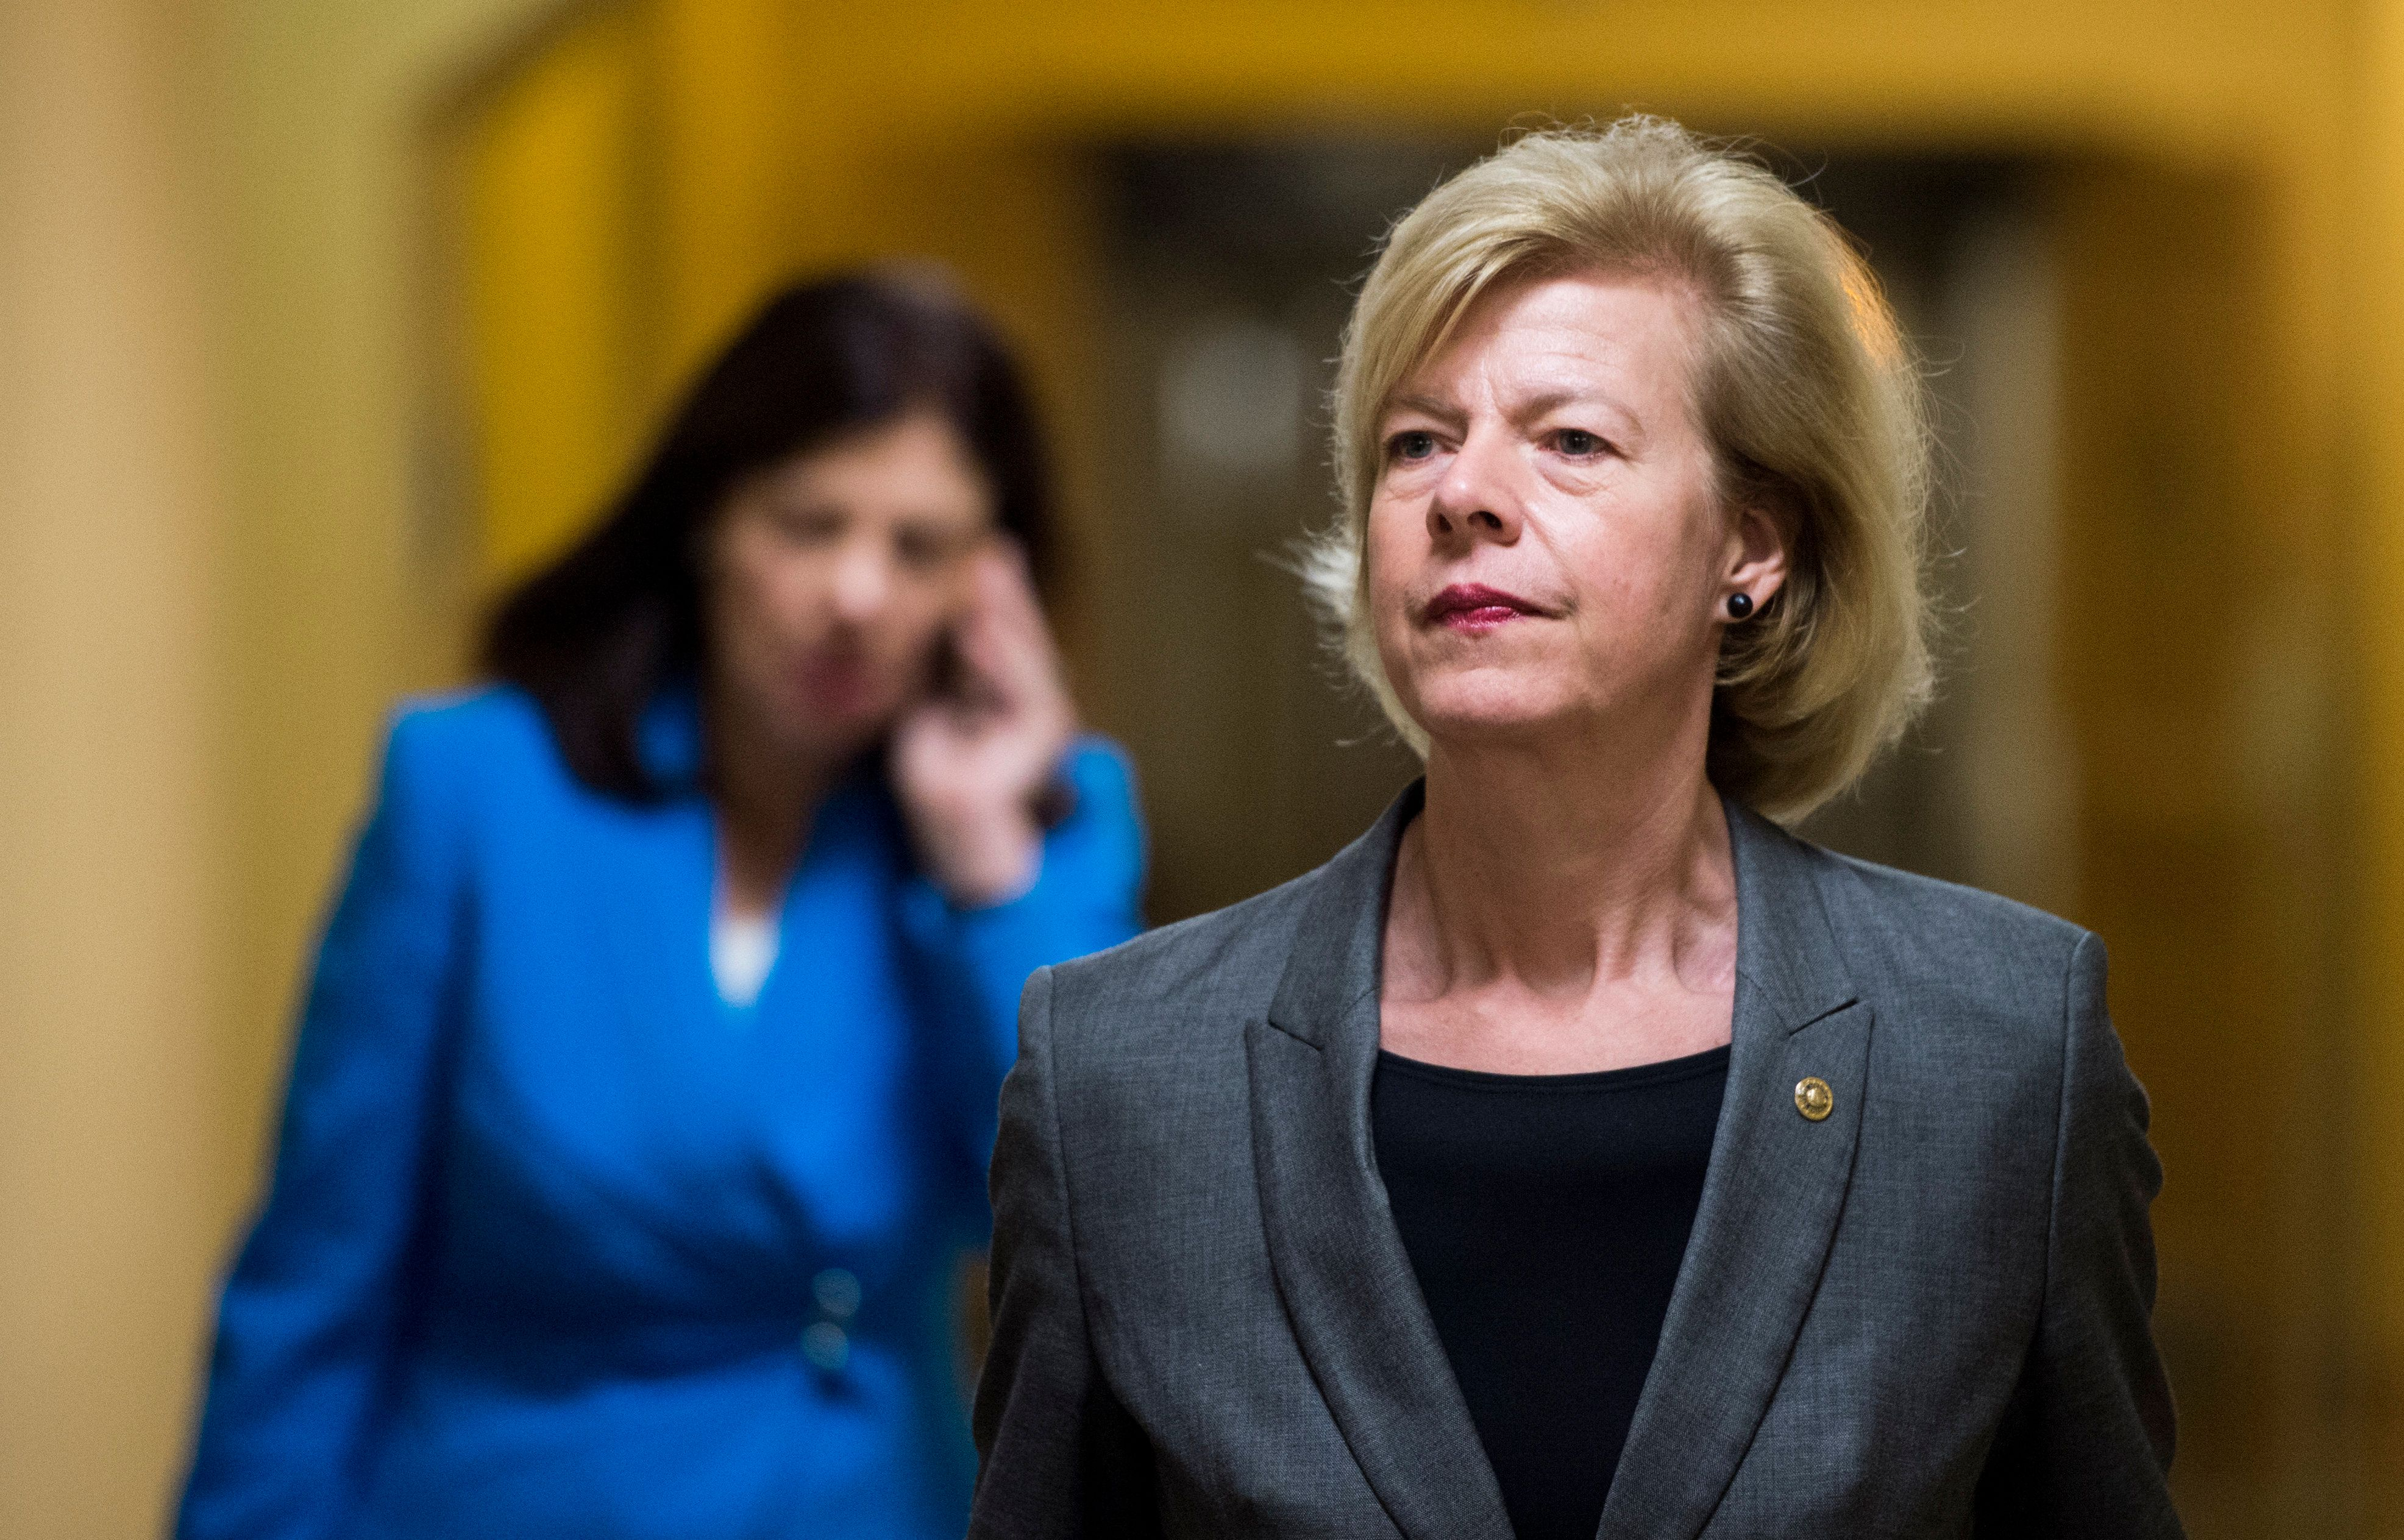 Sen. Tammy Baldwin (D-Wis.) has carved out a record as one of the Senate's leading